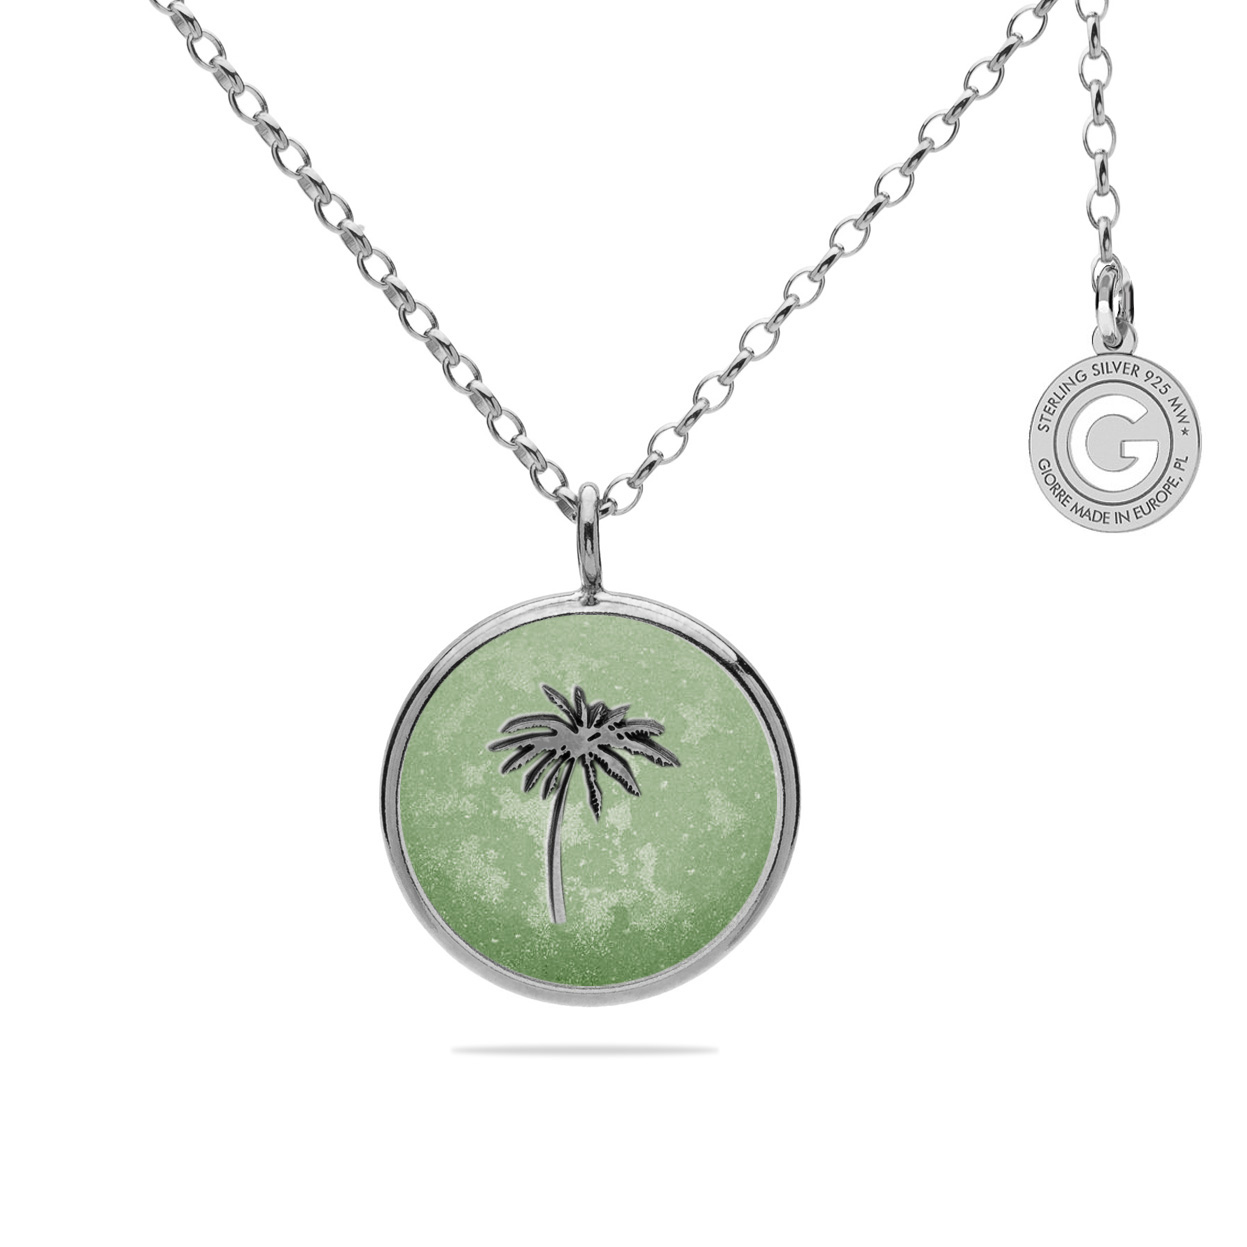 PALM TREE MEDALLION NECKLACE SILVER 925